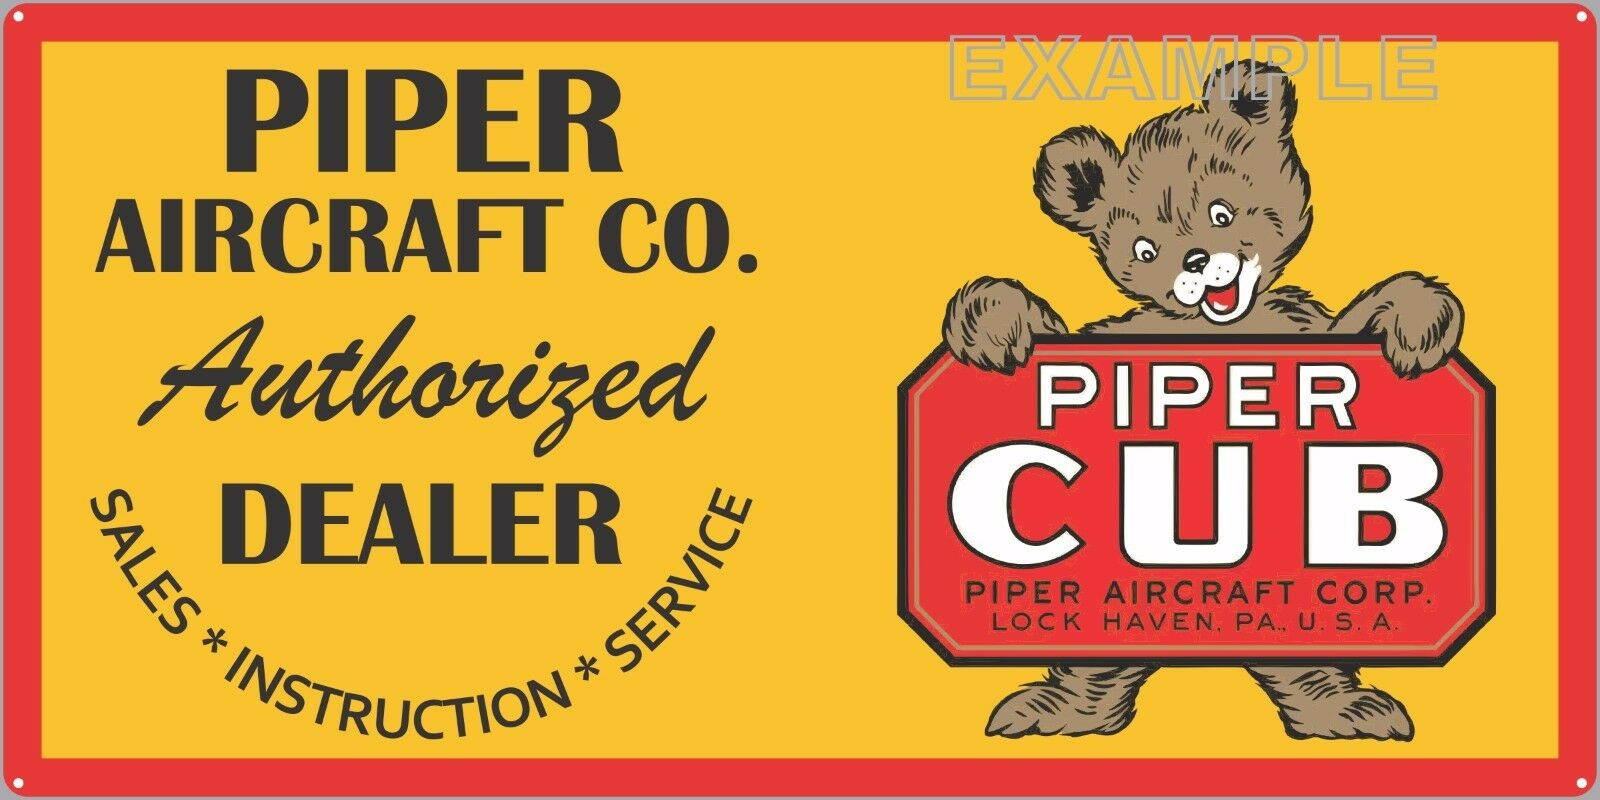 PIPER CUB AIRCRAFT CO OLD SIGN REMAKE ALUMINUM IN OUTDOOR 12  X 24  18  X 36